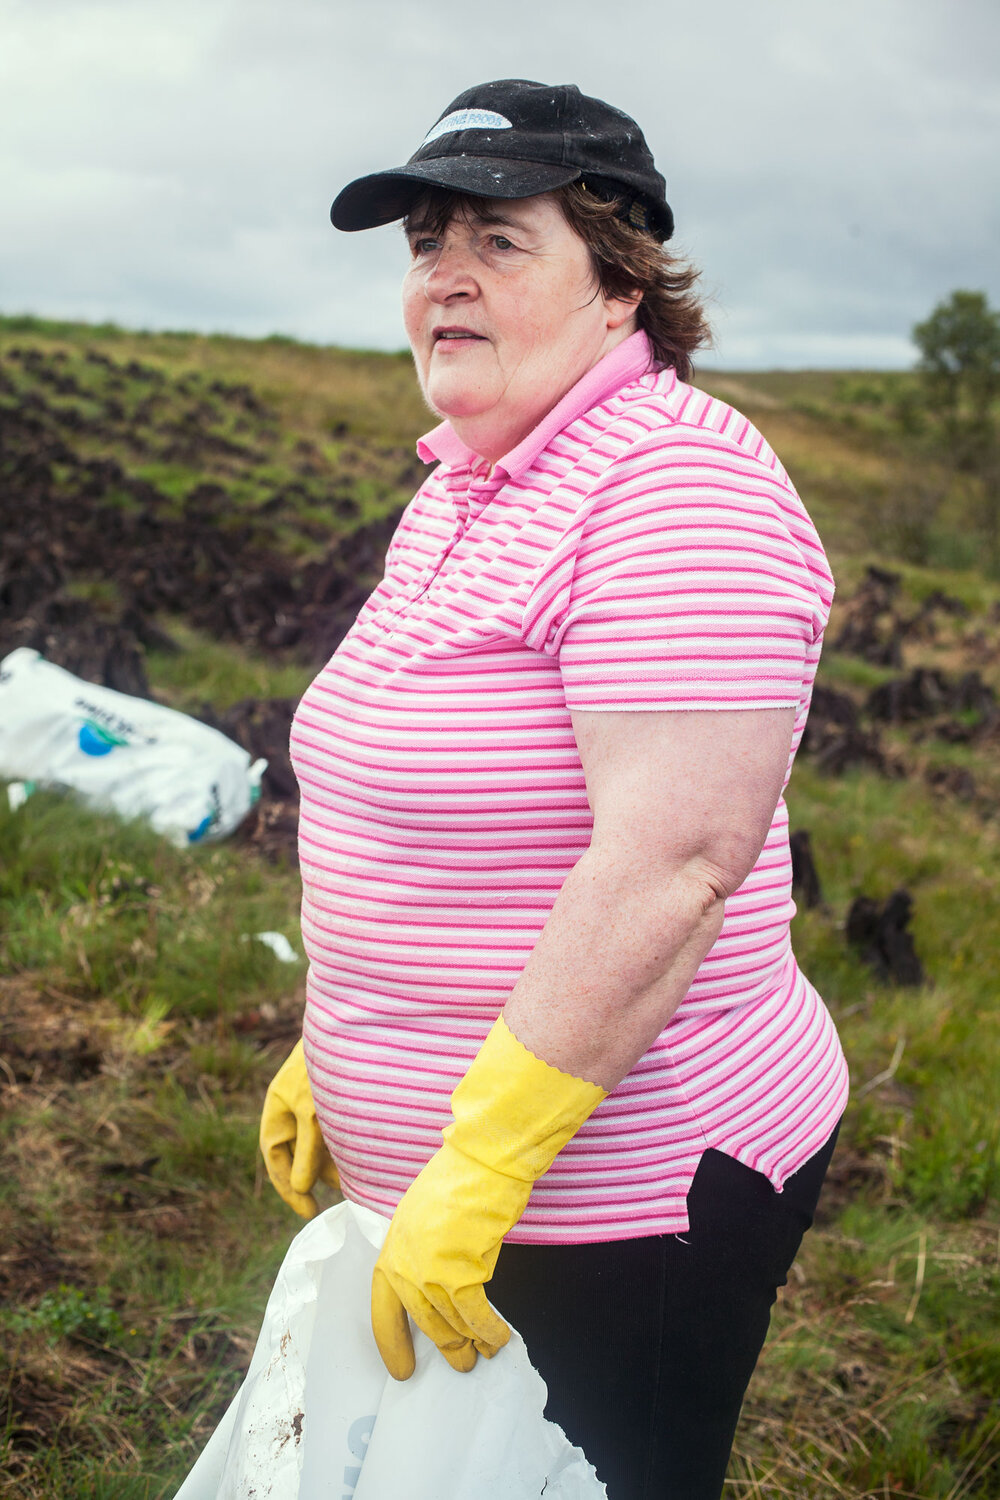 Bridie McKenna on the bog bagging turf, something she has done every summer for most of her life.